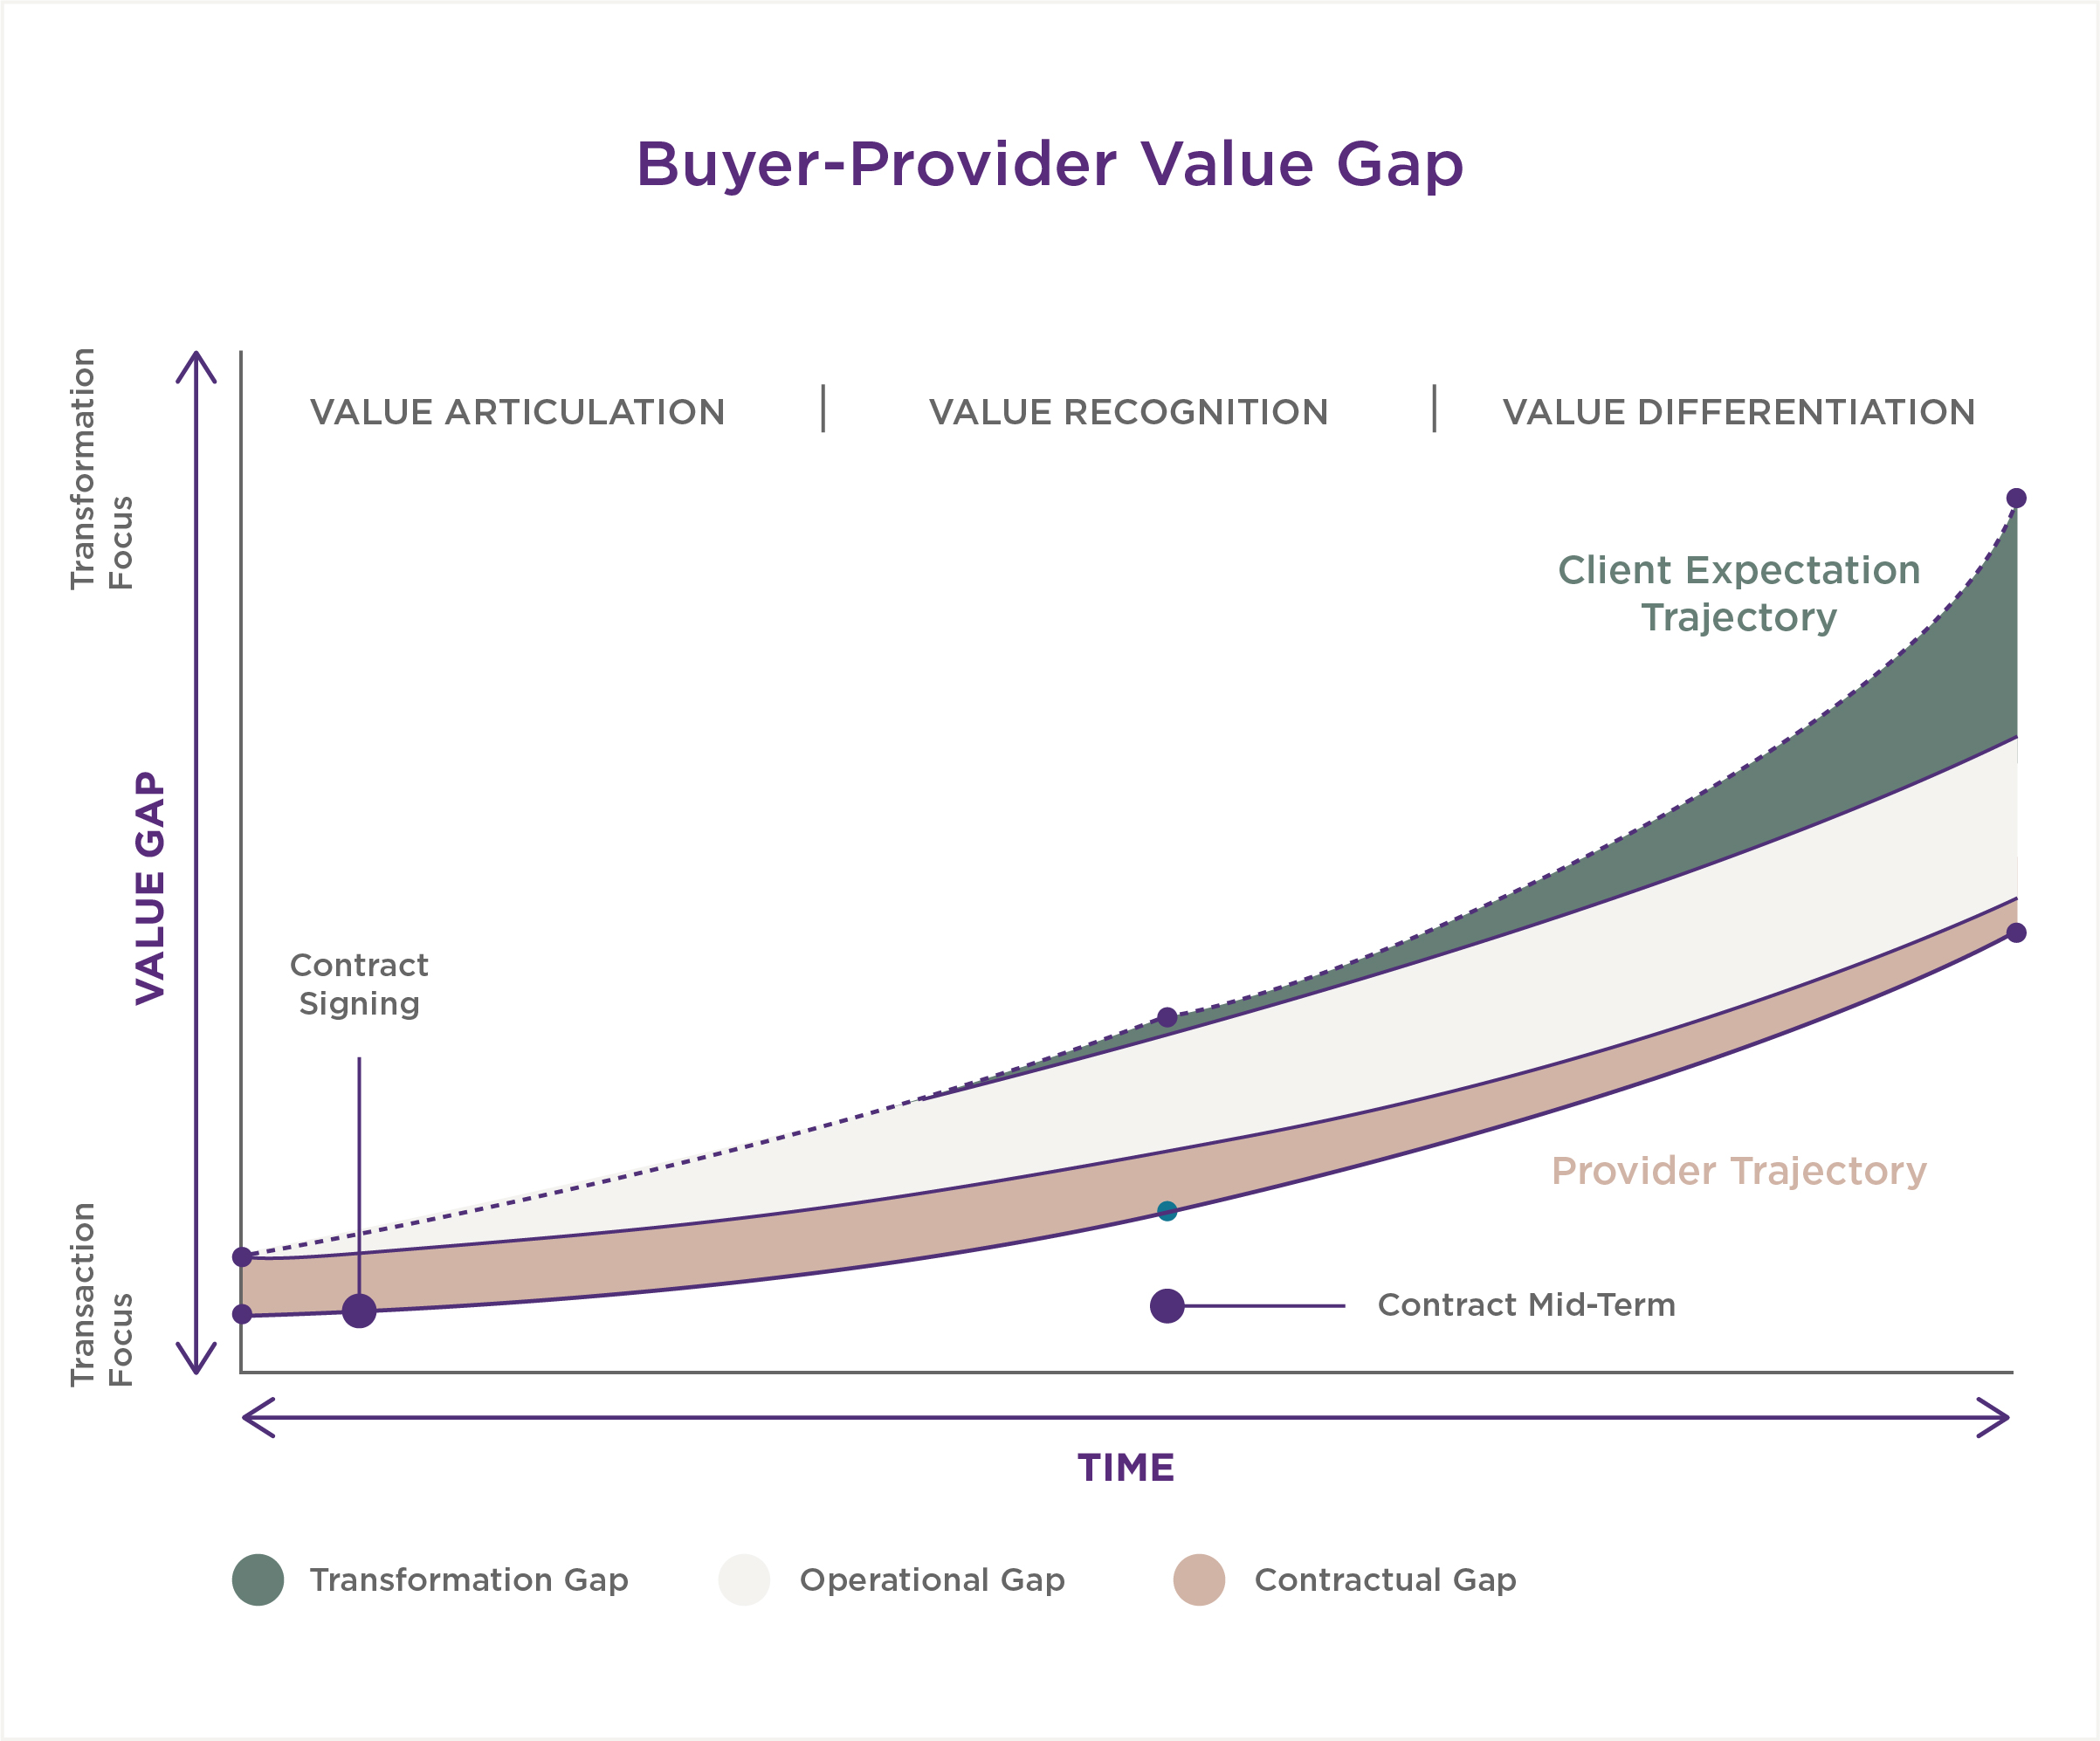 buyer-provider value gap